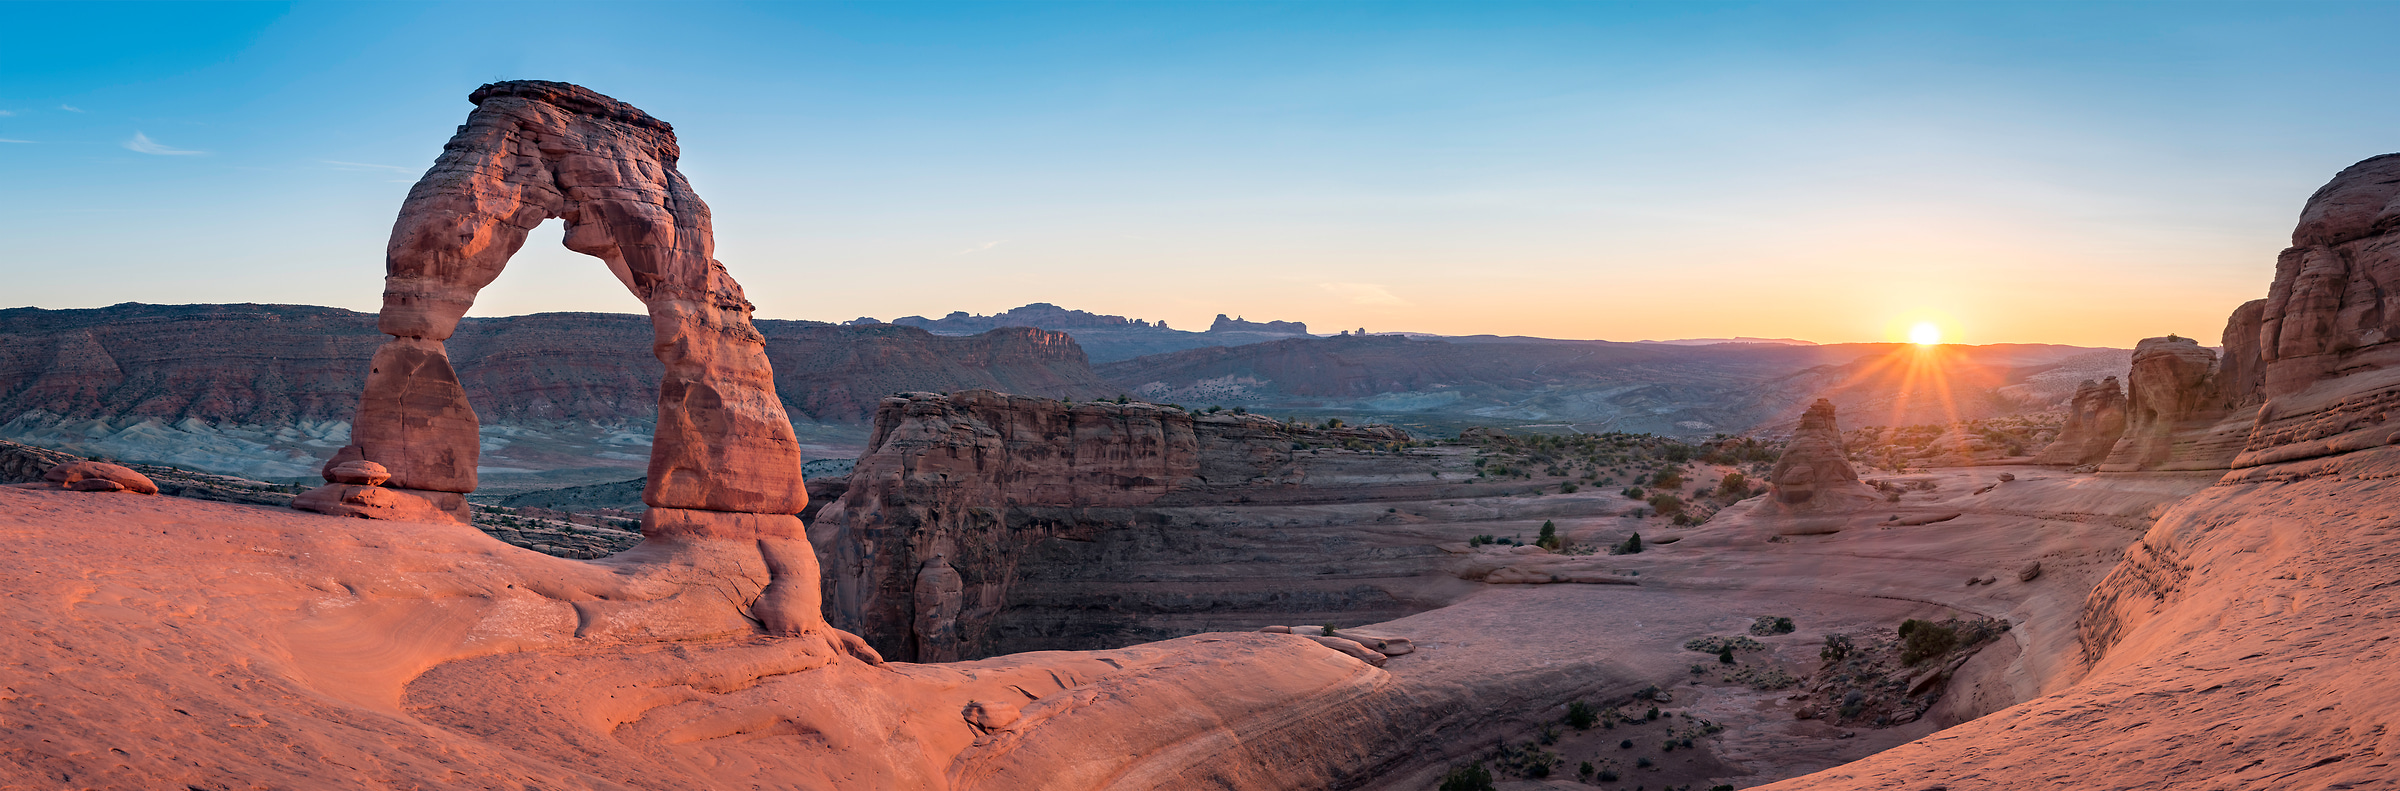 365 megapixels! A very high resolution, large-format VAST photo print of an American panorama landscape at sunset; fine art photo of Delicate Arch created by Justin Katz in Arches National Park, Moab, Utah